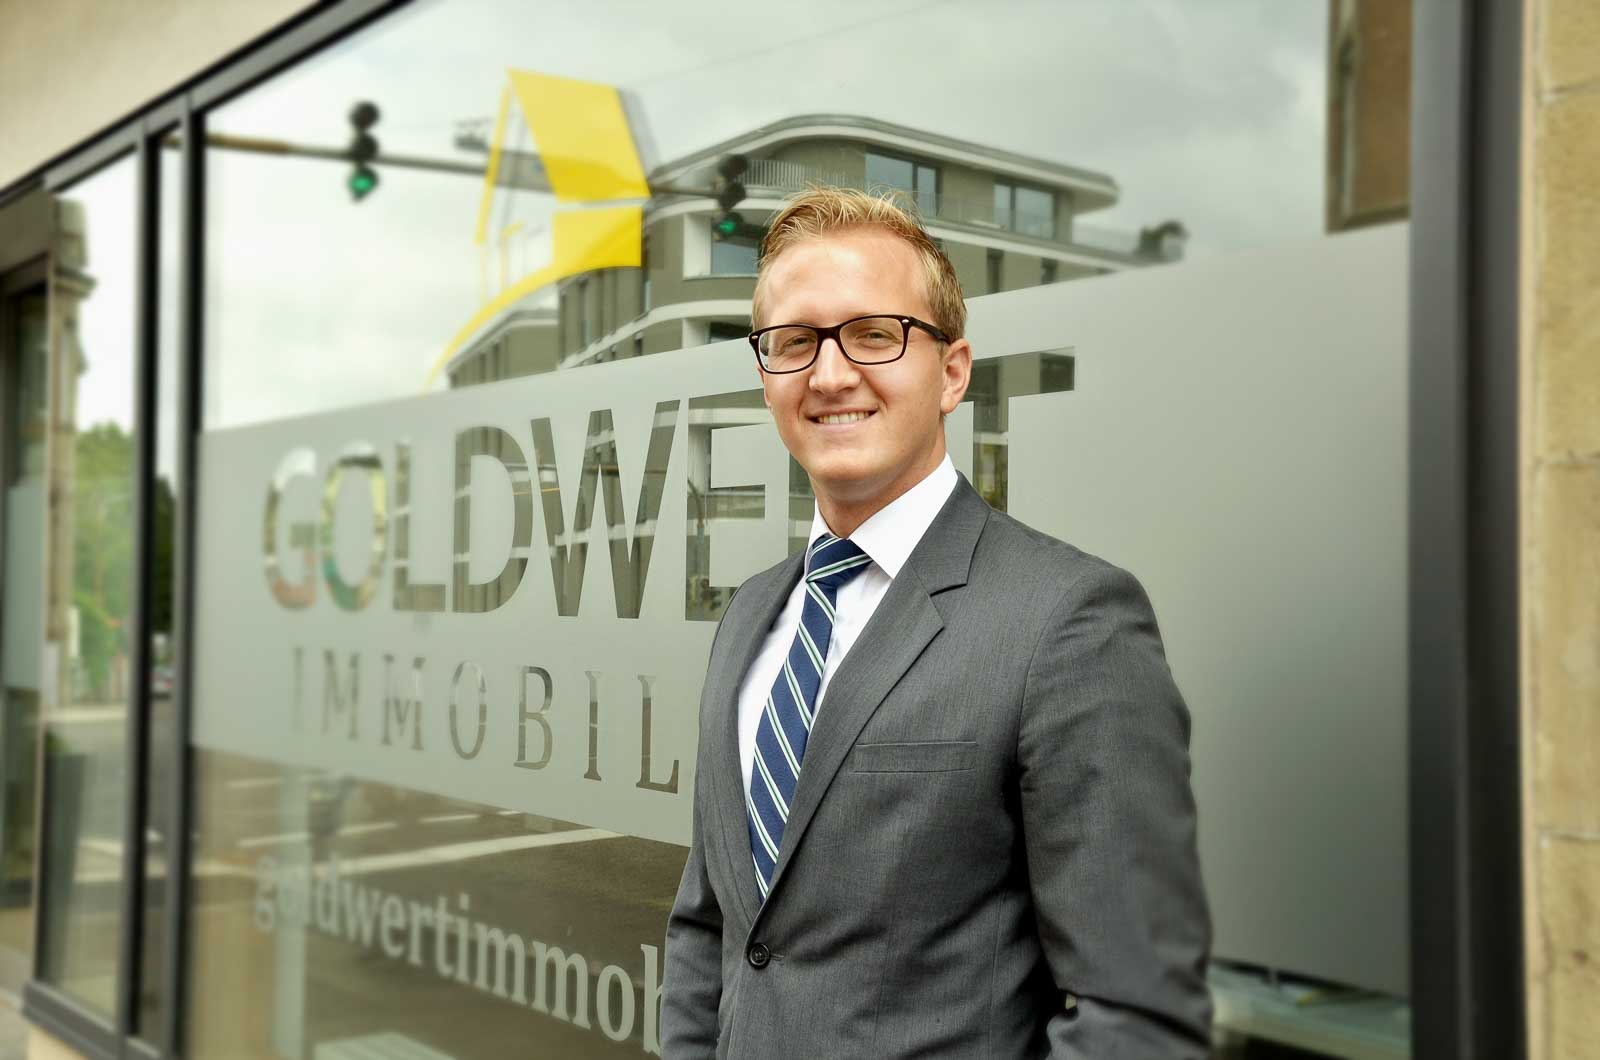 Immobilien Ludwigsburg, Immobilienmakler Ludwigsburg,